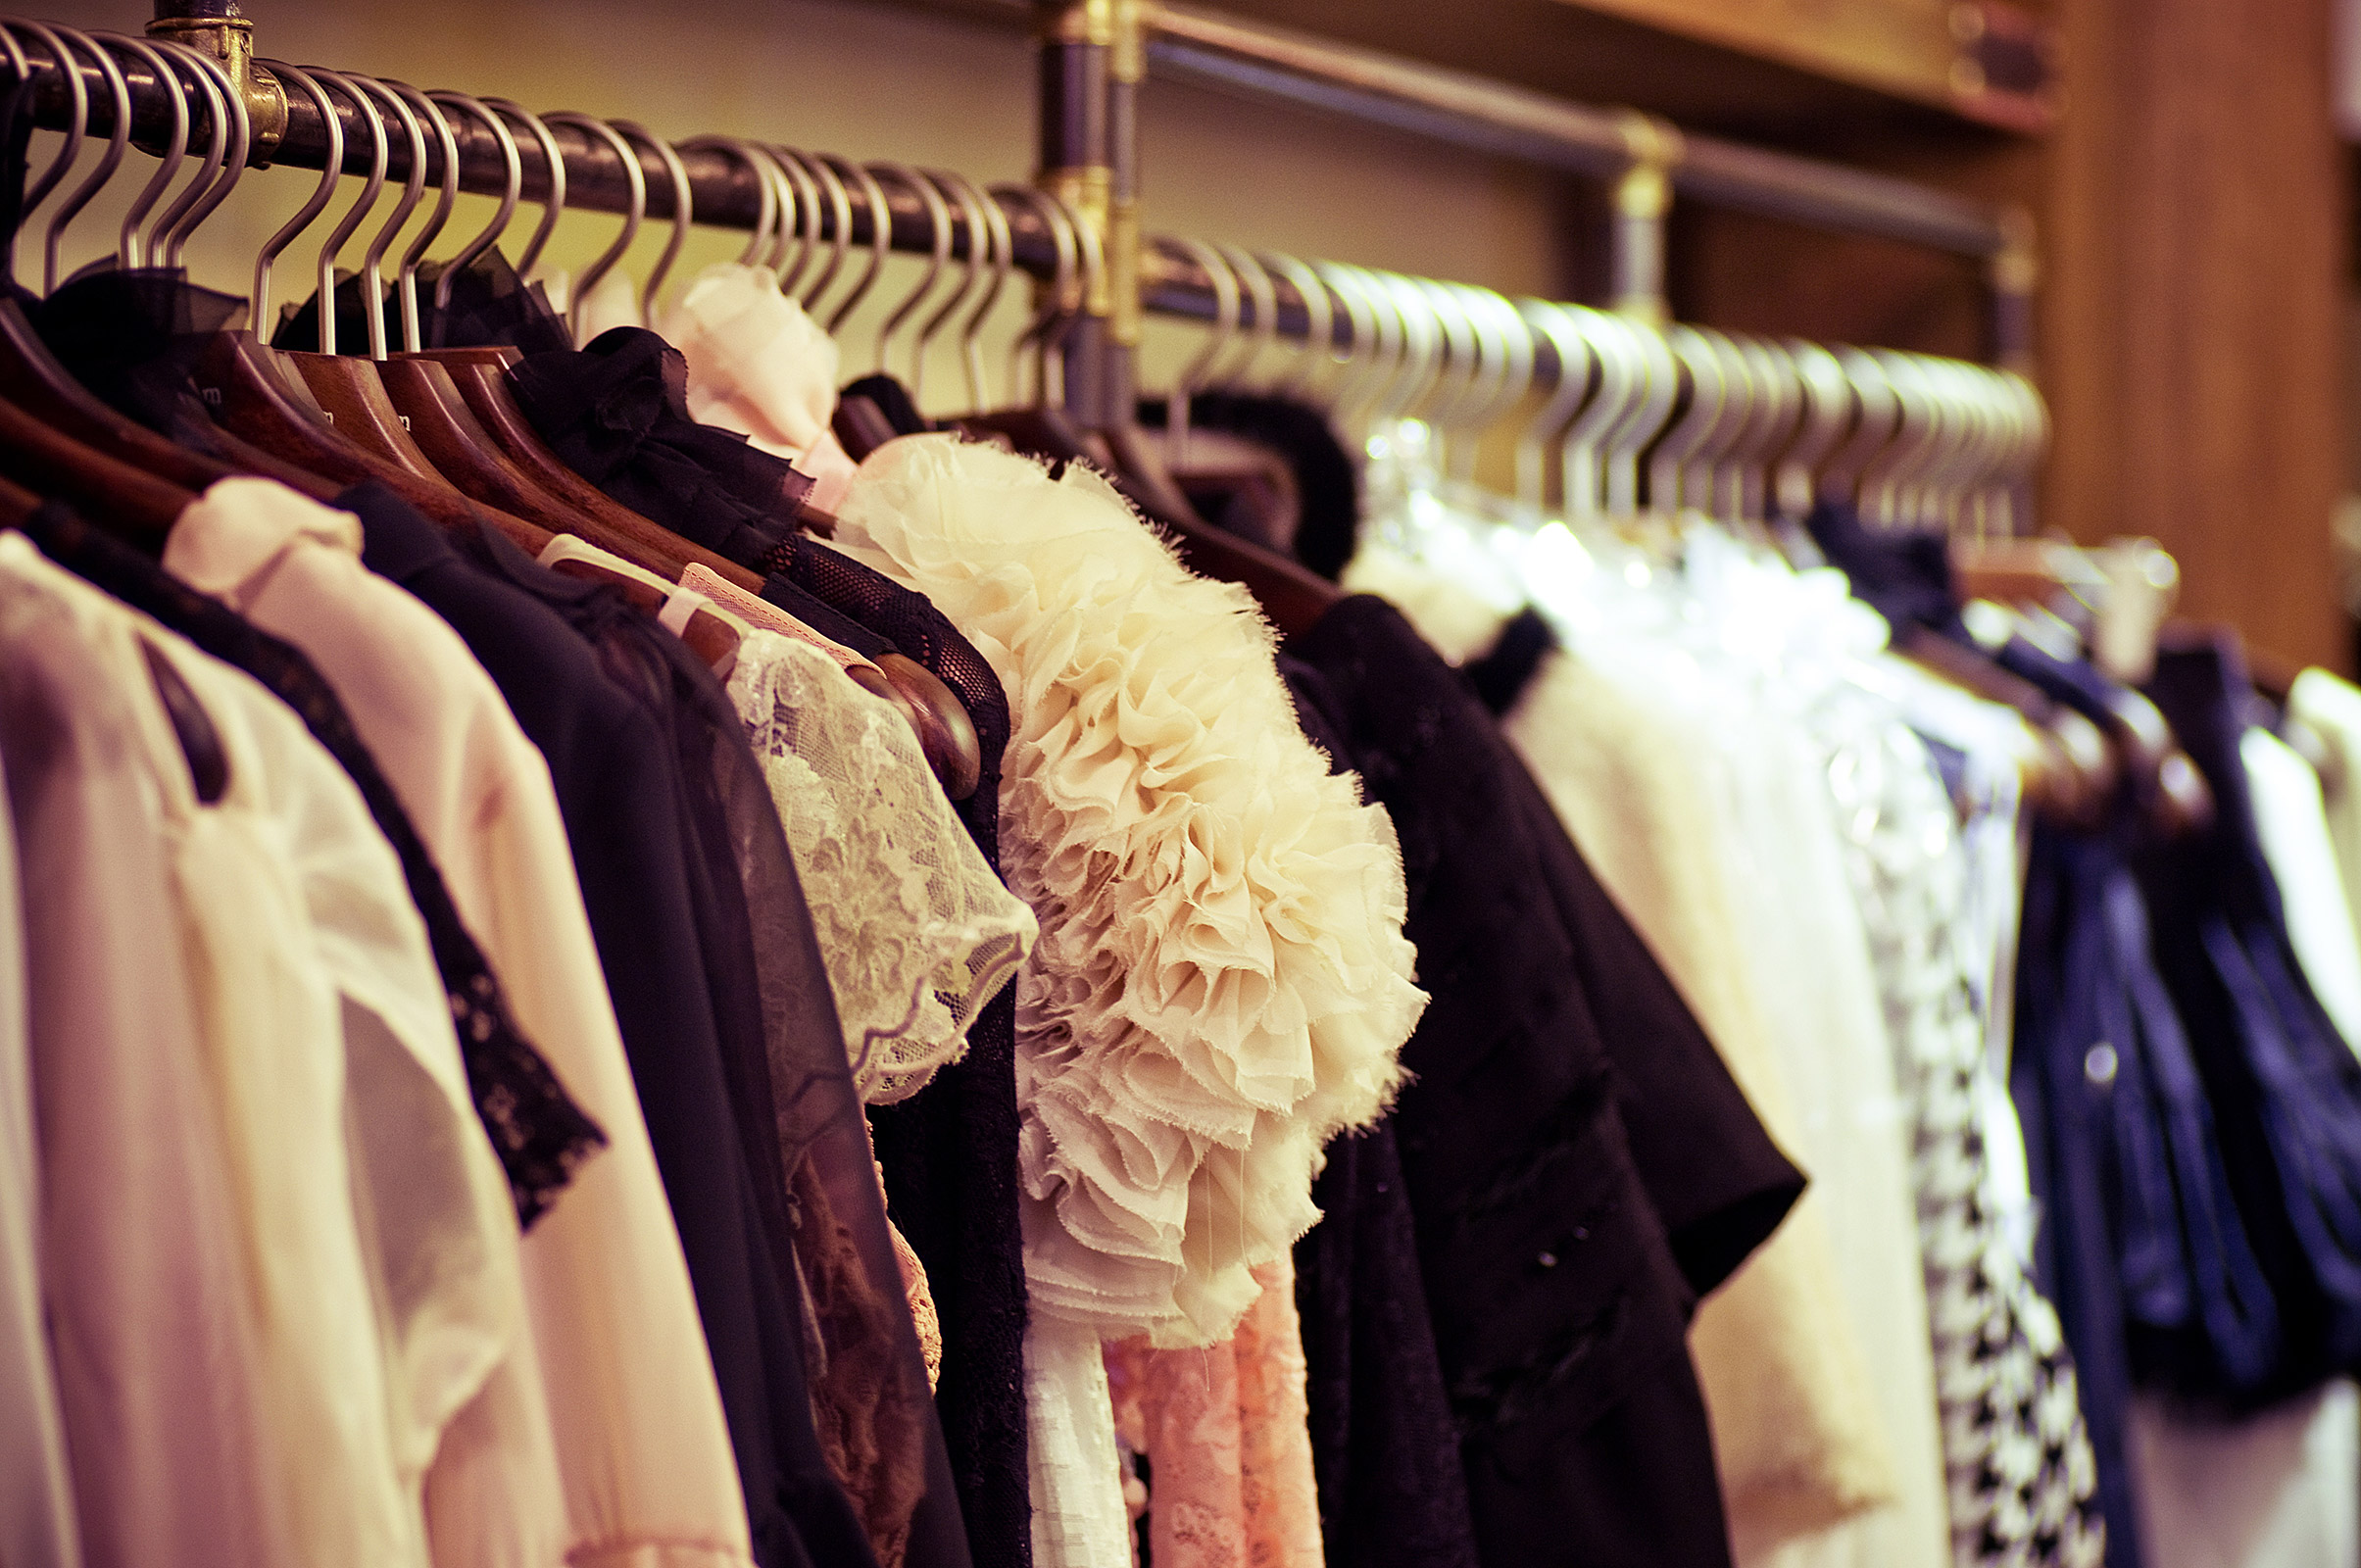 Closet full of woman's clothing